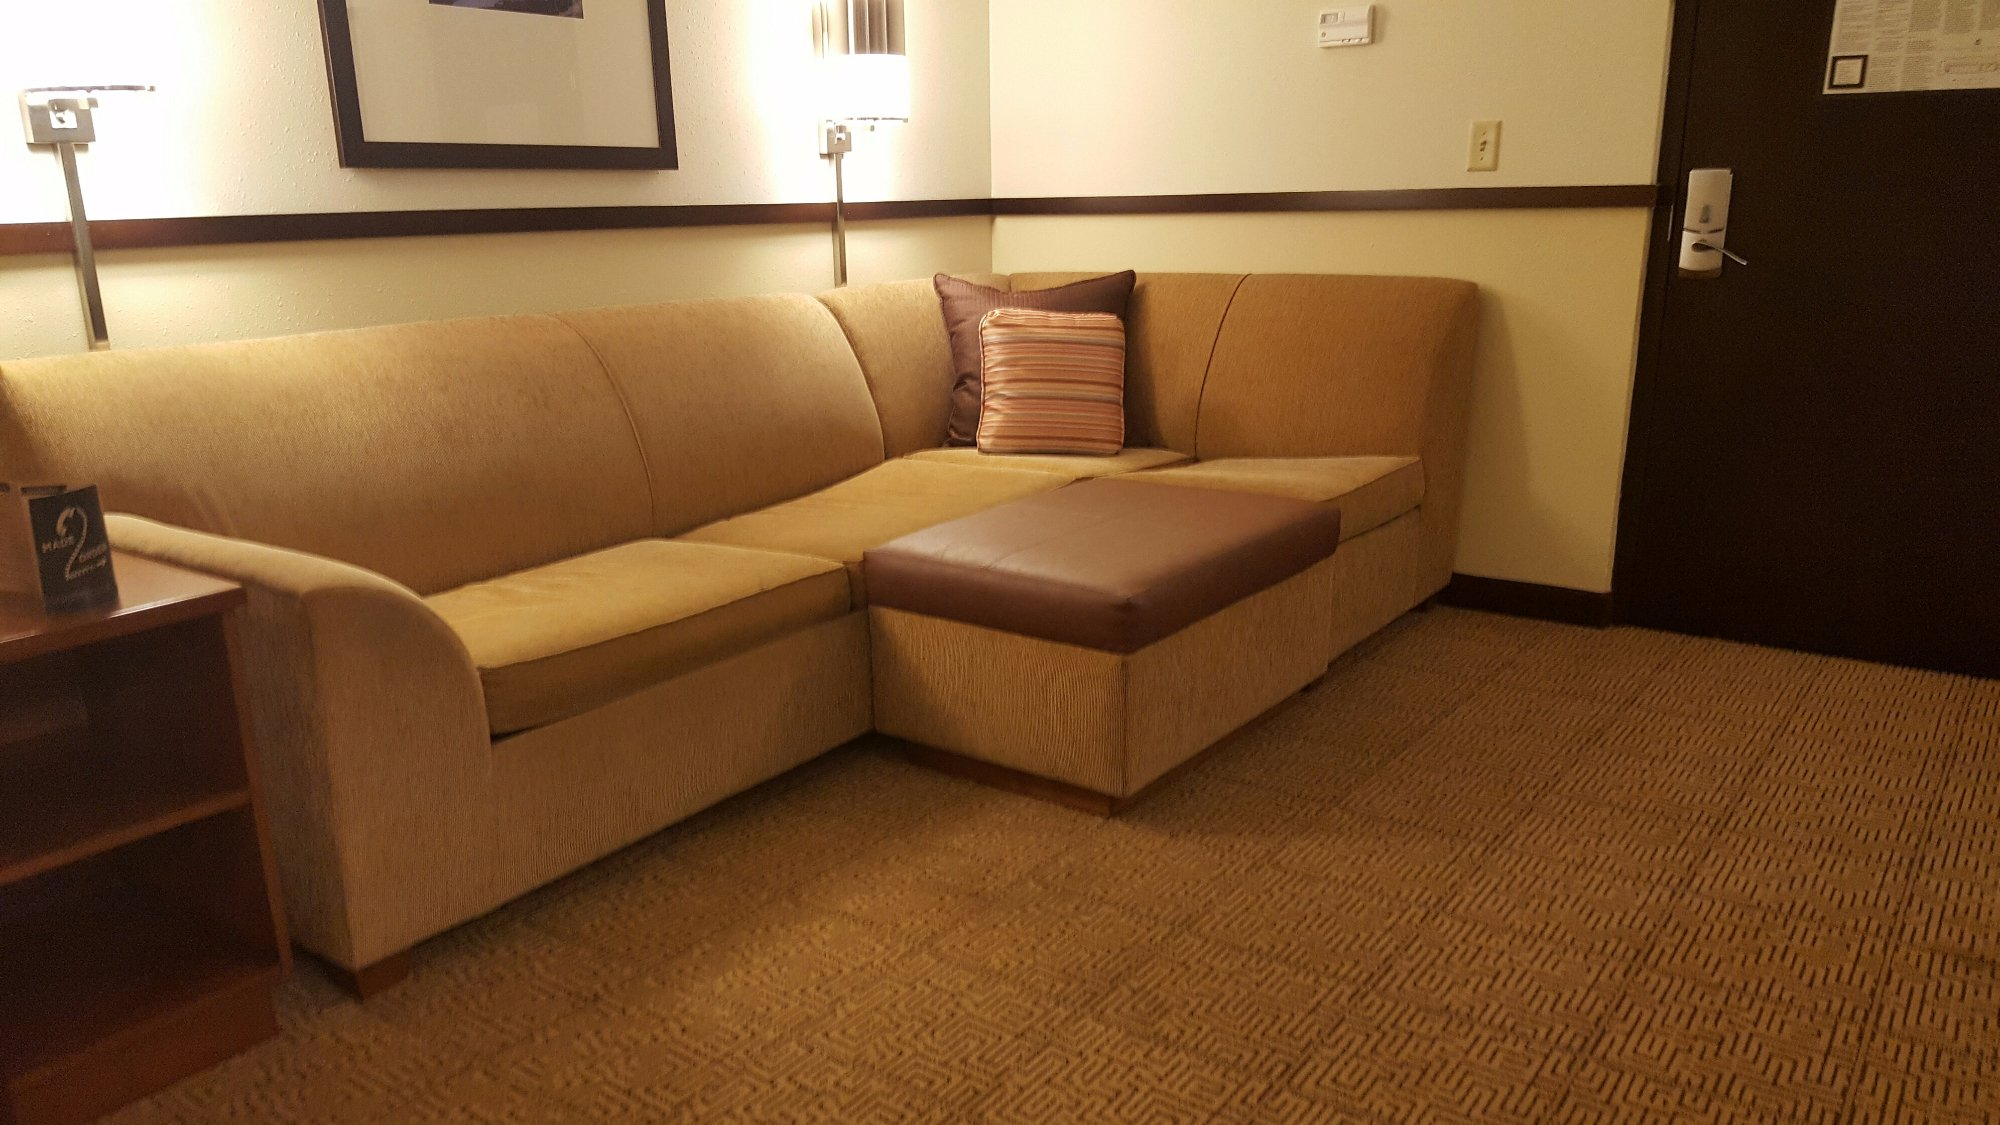 Stadium Seating Couches Living Room Nakicphotography stadium seating couches living room